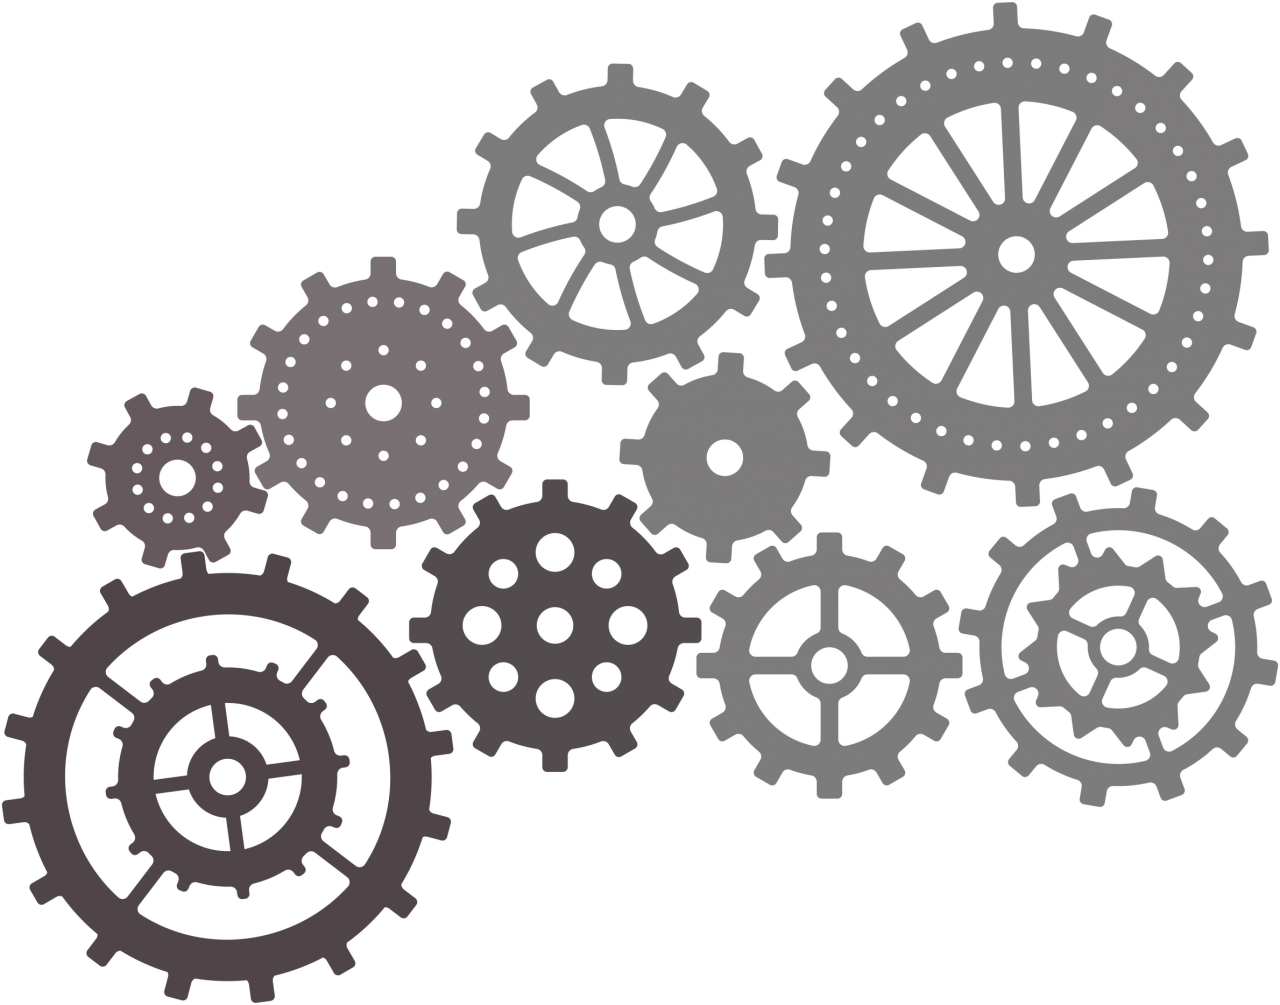 Cheery lynn designs gears. Steampunk clipart chain sprocket